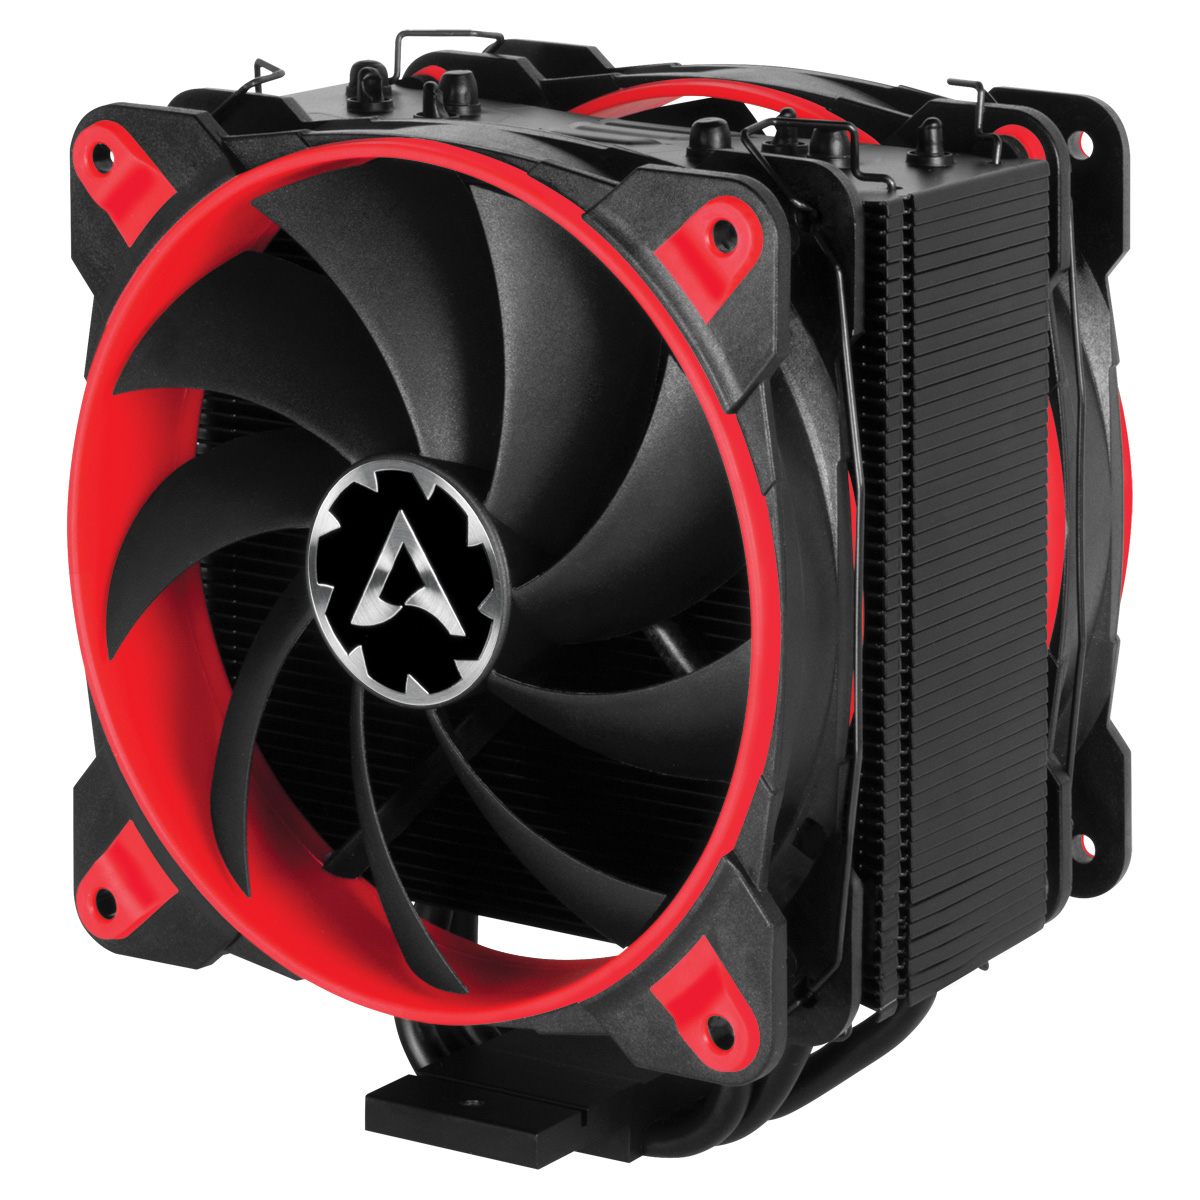 ARCTIC Freezer 33 eSport edition (Red) CPU Cooler for Intel 1150/1151/1155/1156/2011-3/2066 & AMD AM4